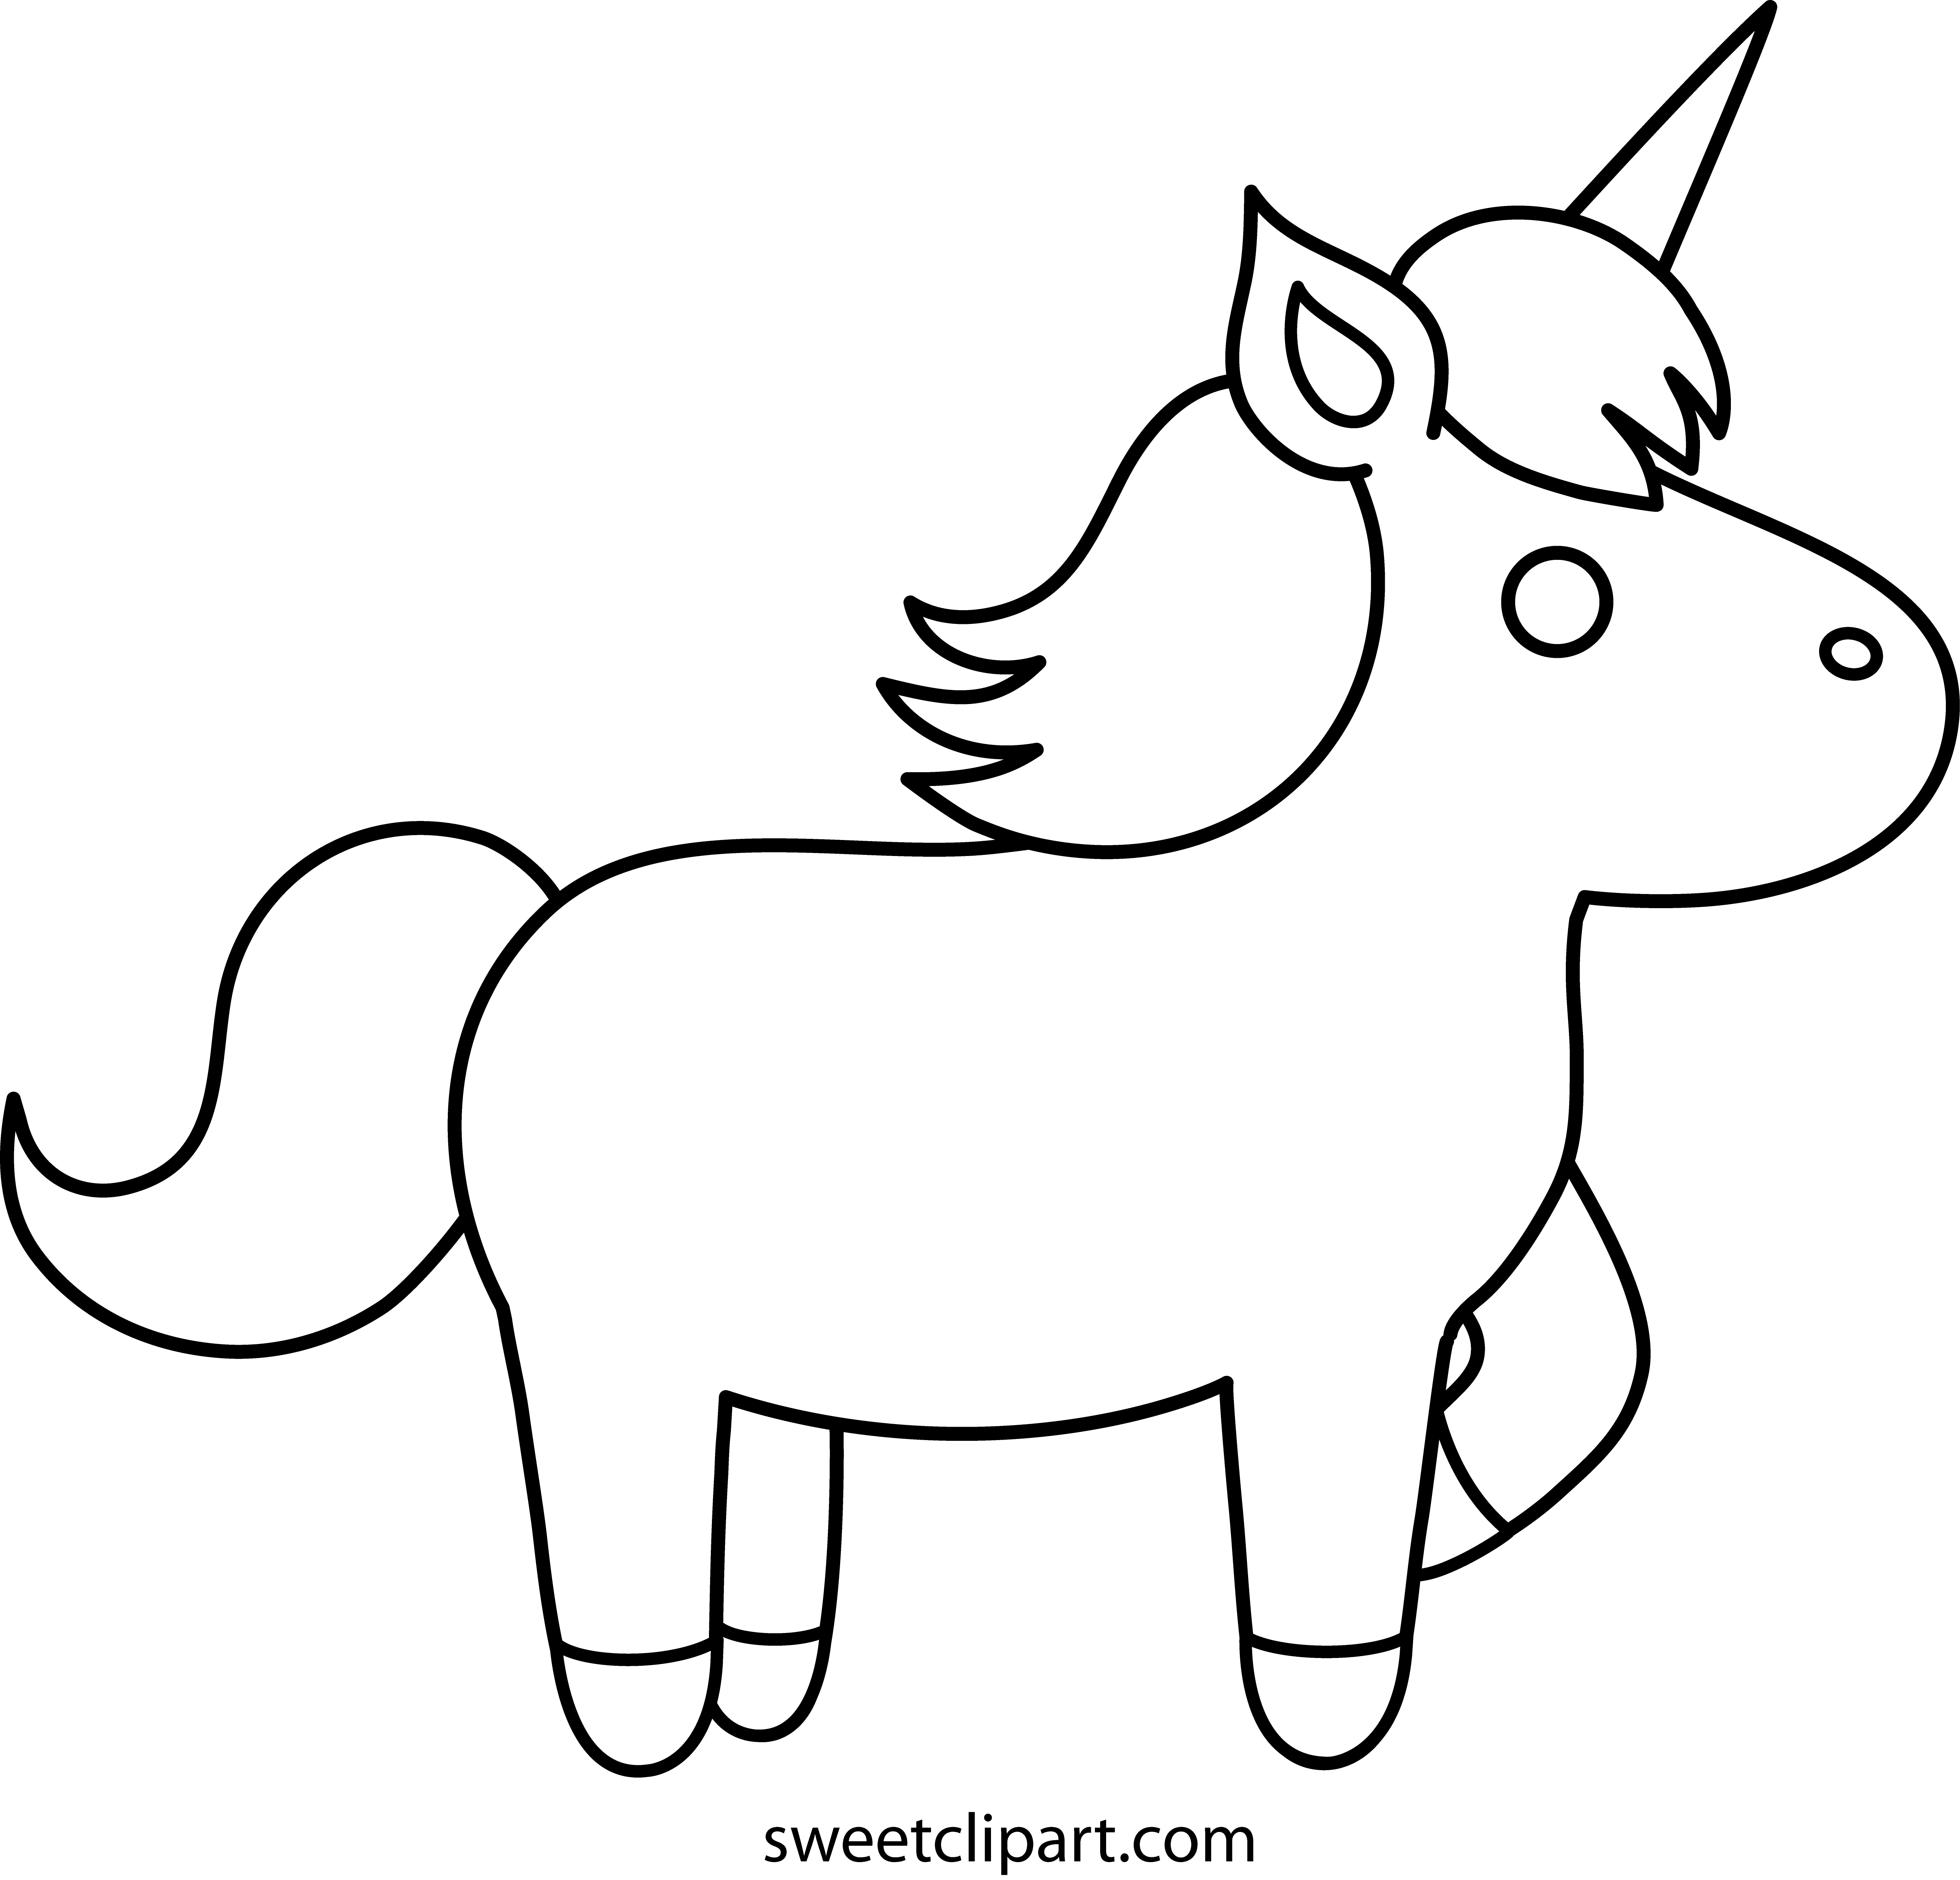 Easy Unicorn Coloring Pages Simple Unicorn Outline Coloring Coloring Pages Unicorn Coloring Pages Unicorn Outline Cartoon Coloring Pages